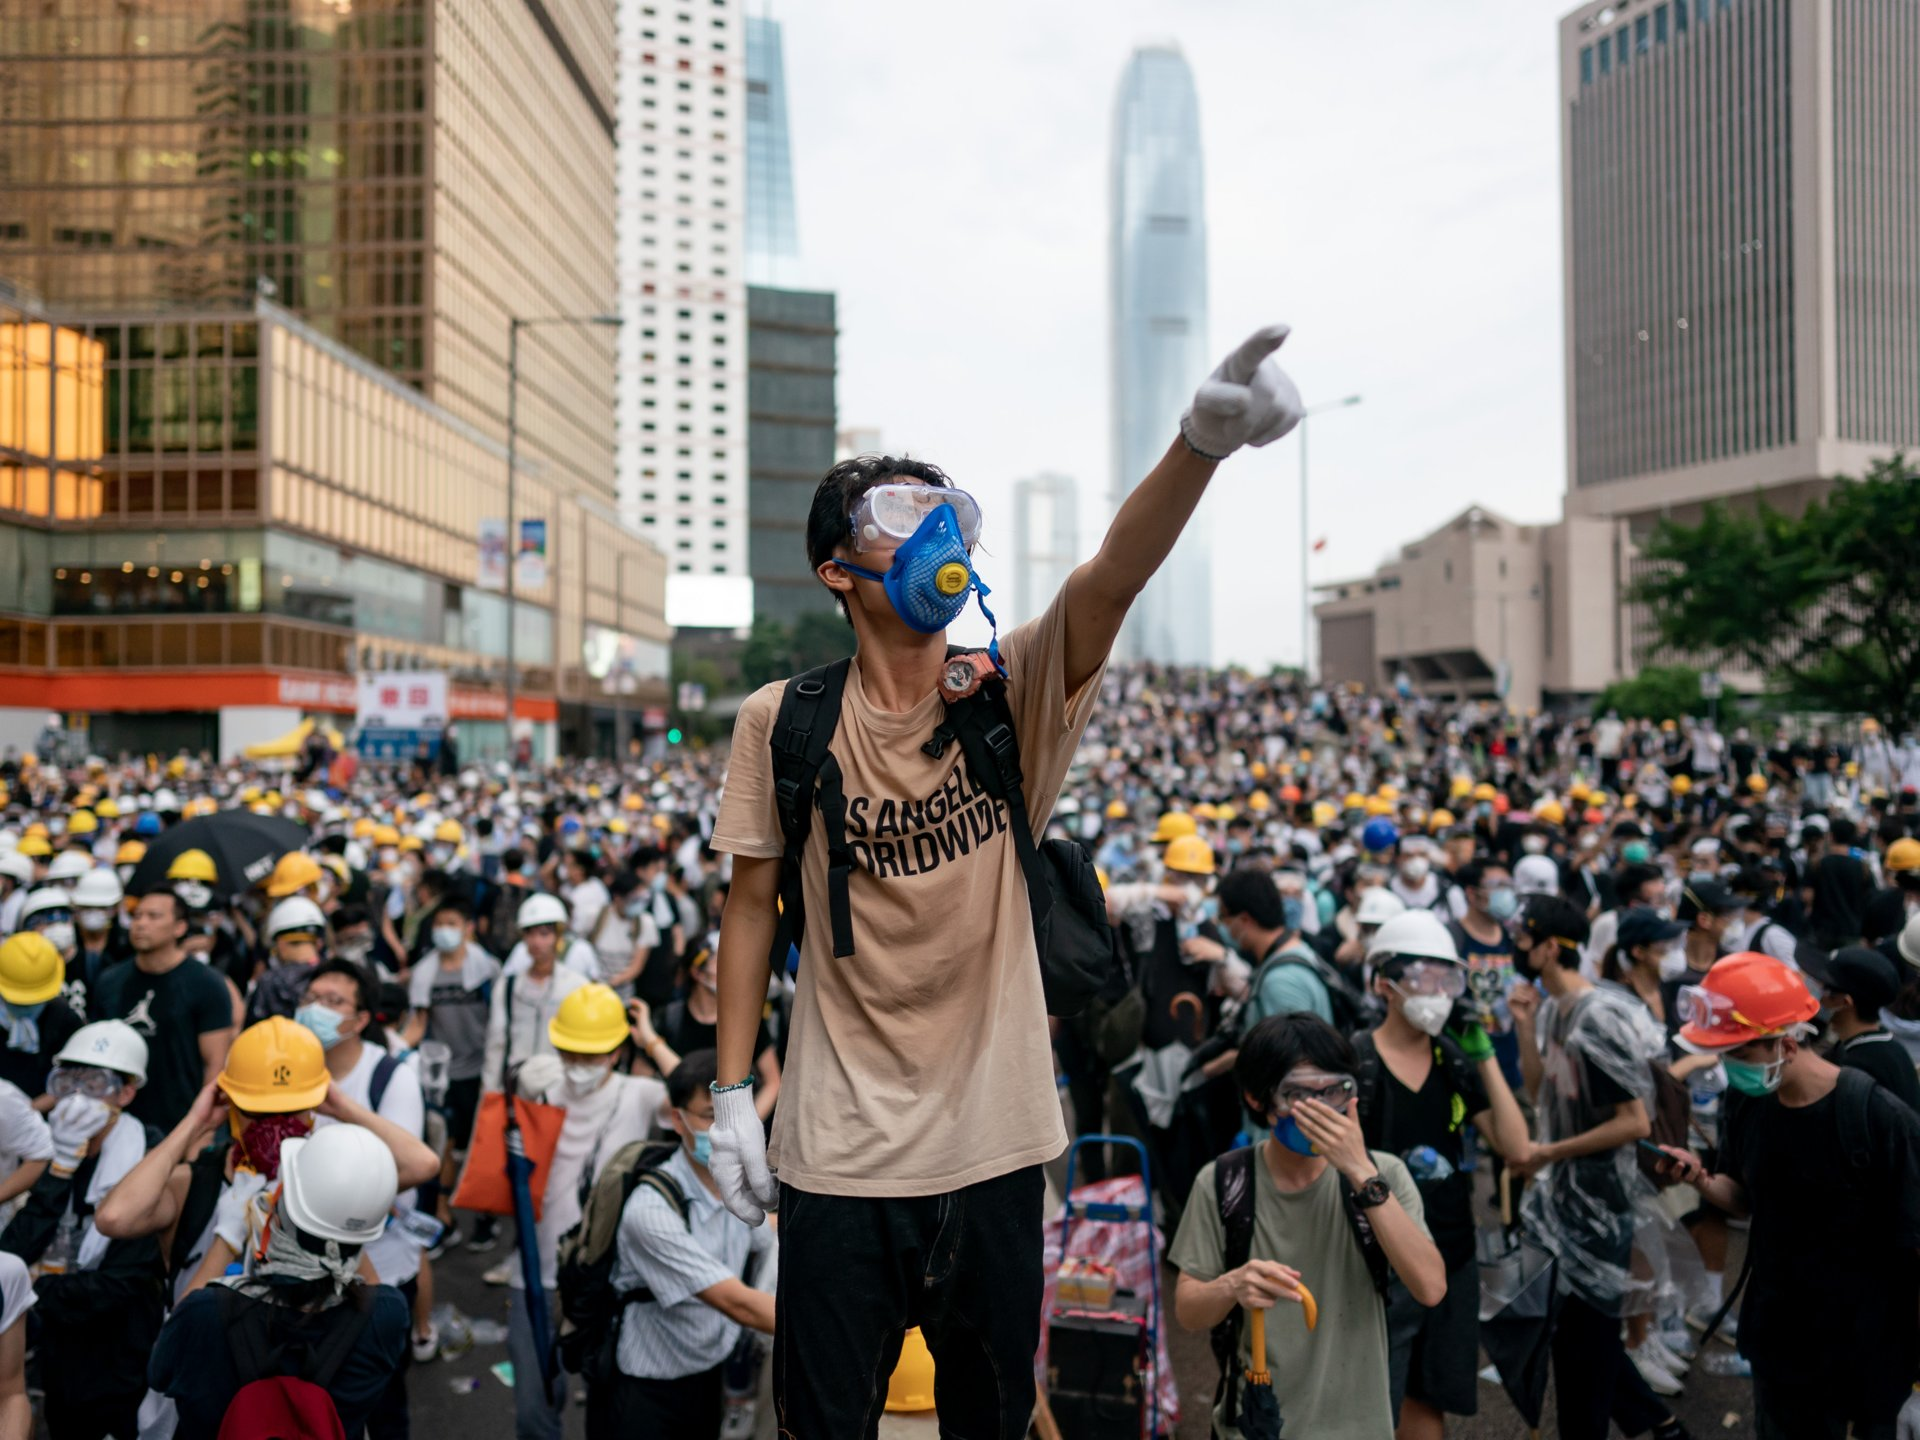 Is Hong Kong on the brink of a revolution? 5 Geopolitical Effects You Need to Know